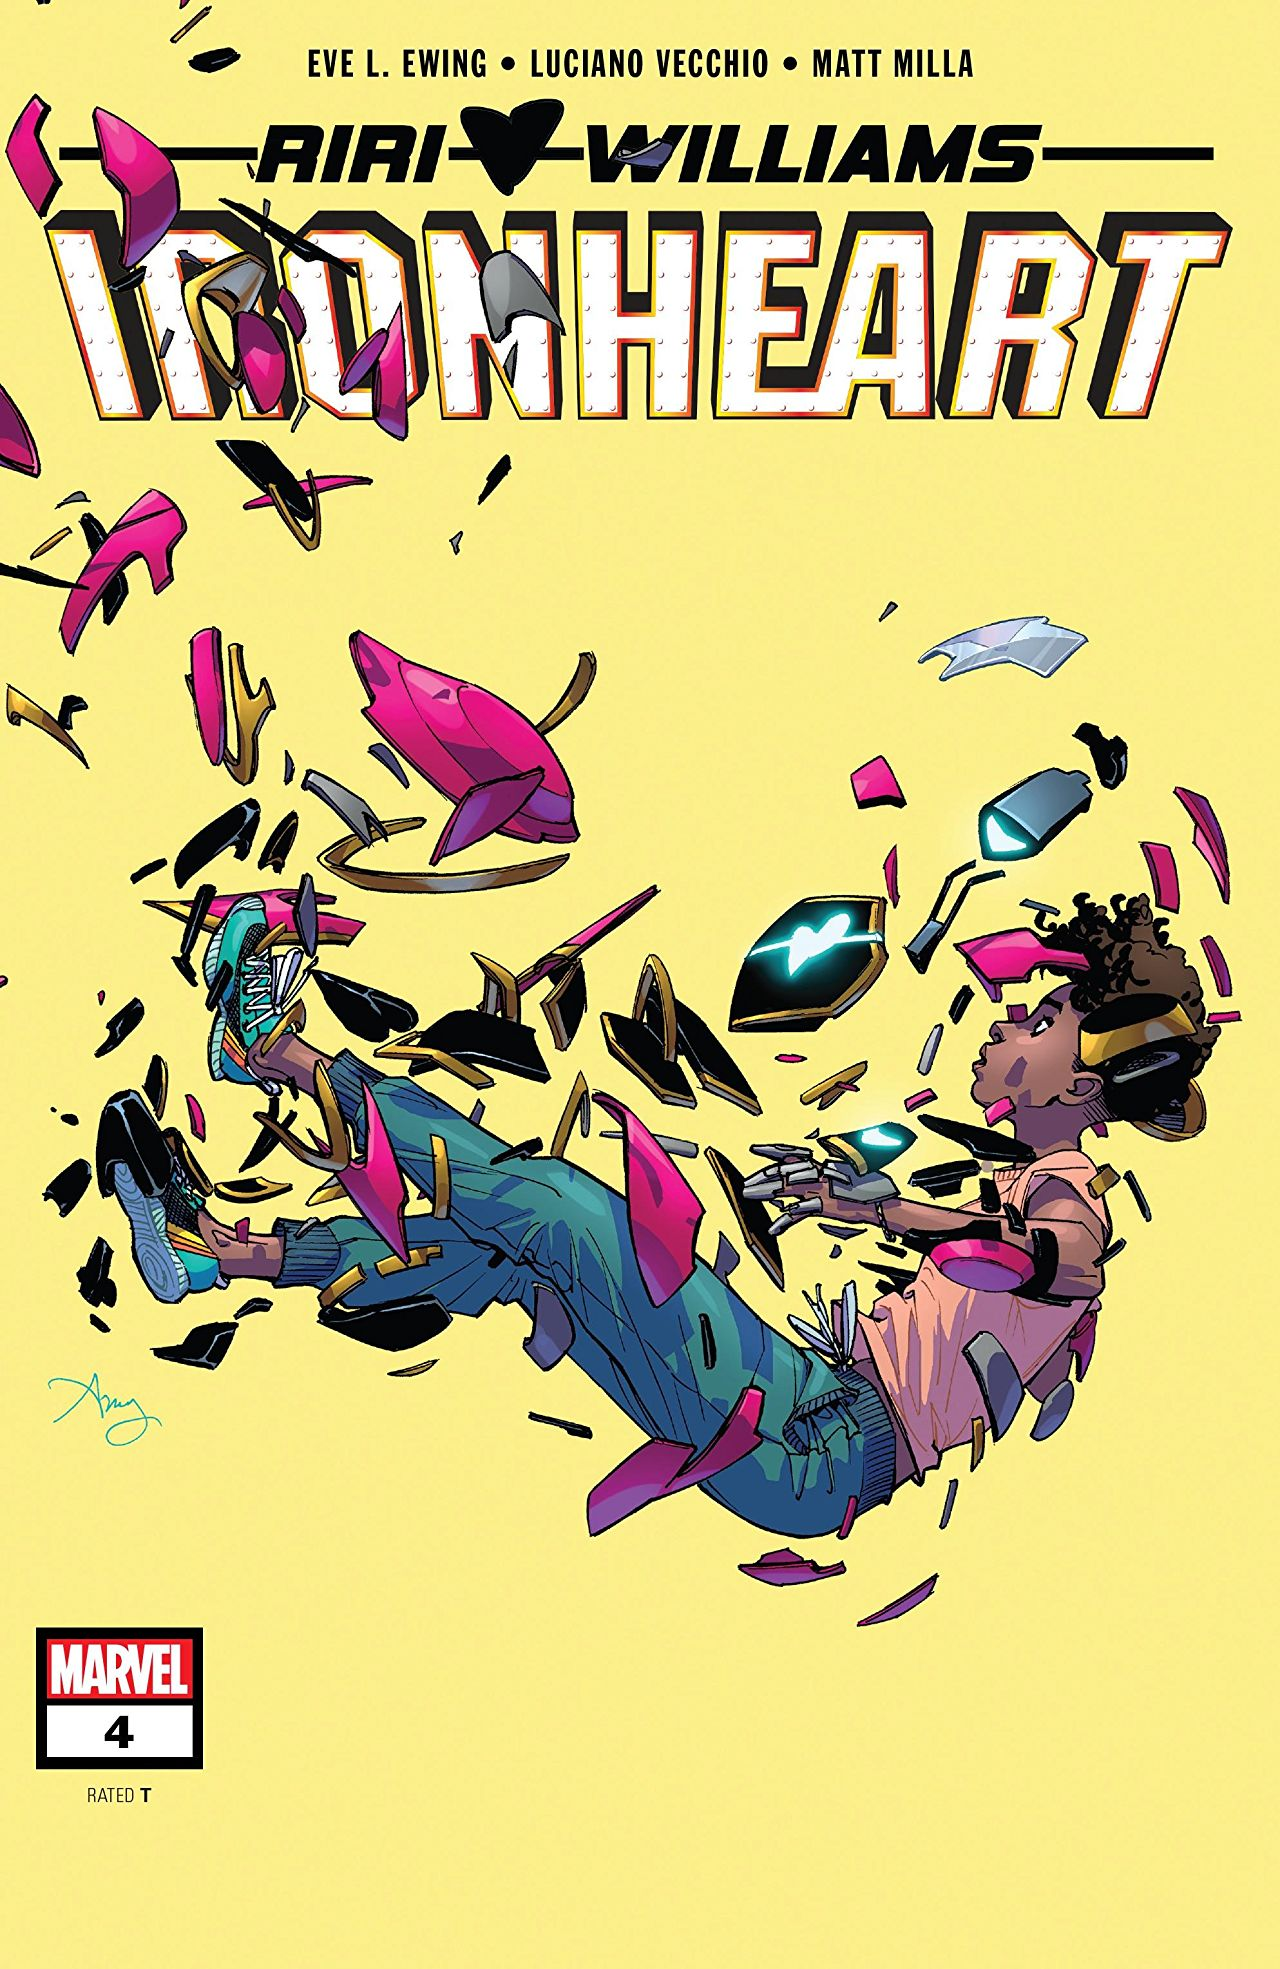 Ironheart #4 cover art by Amy Reeder